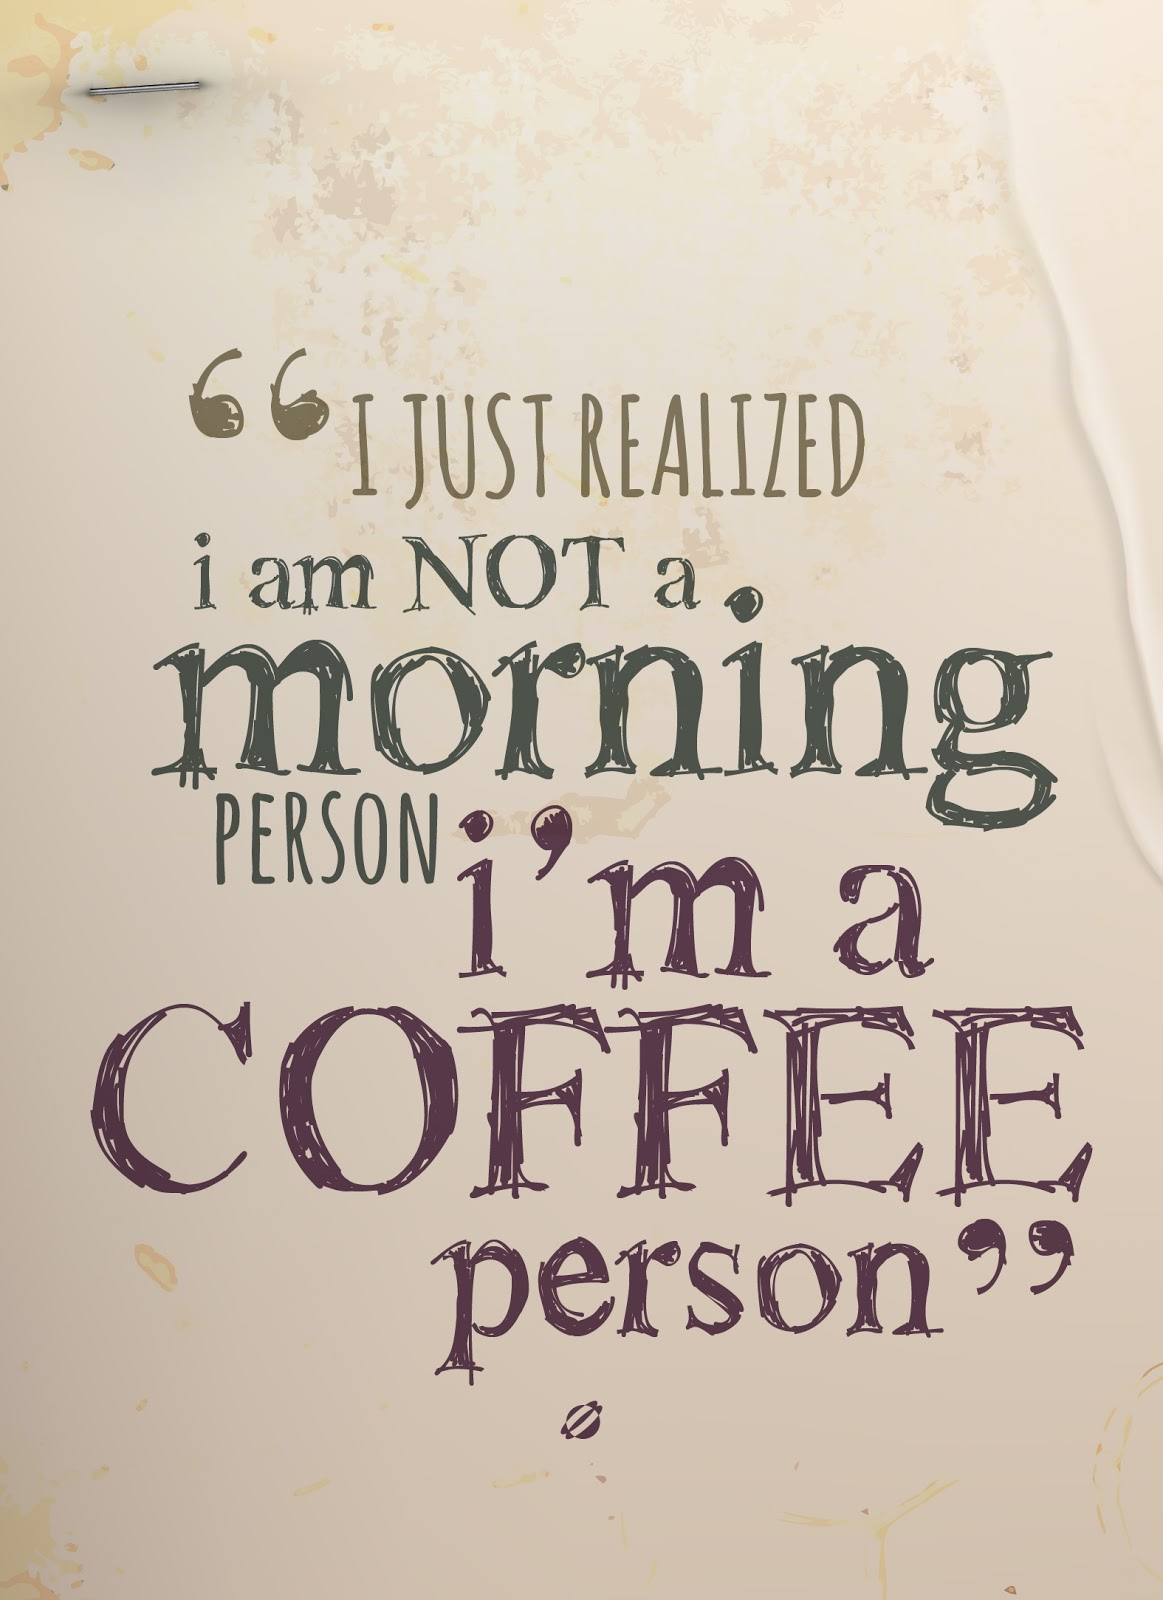 I just realized i am not a morning person i'm a coffee person